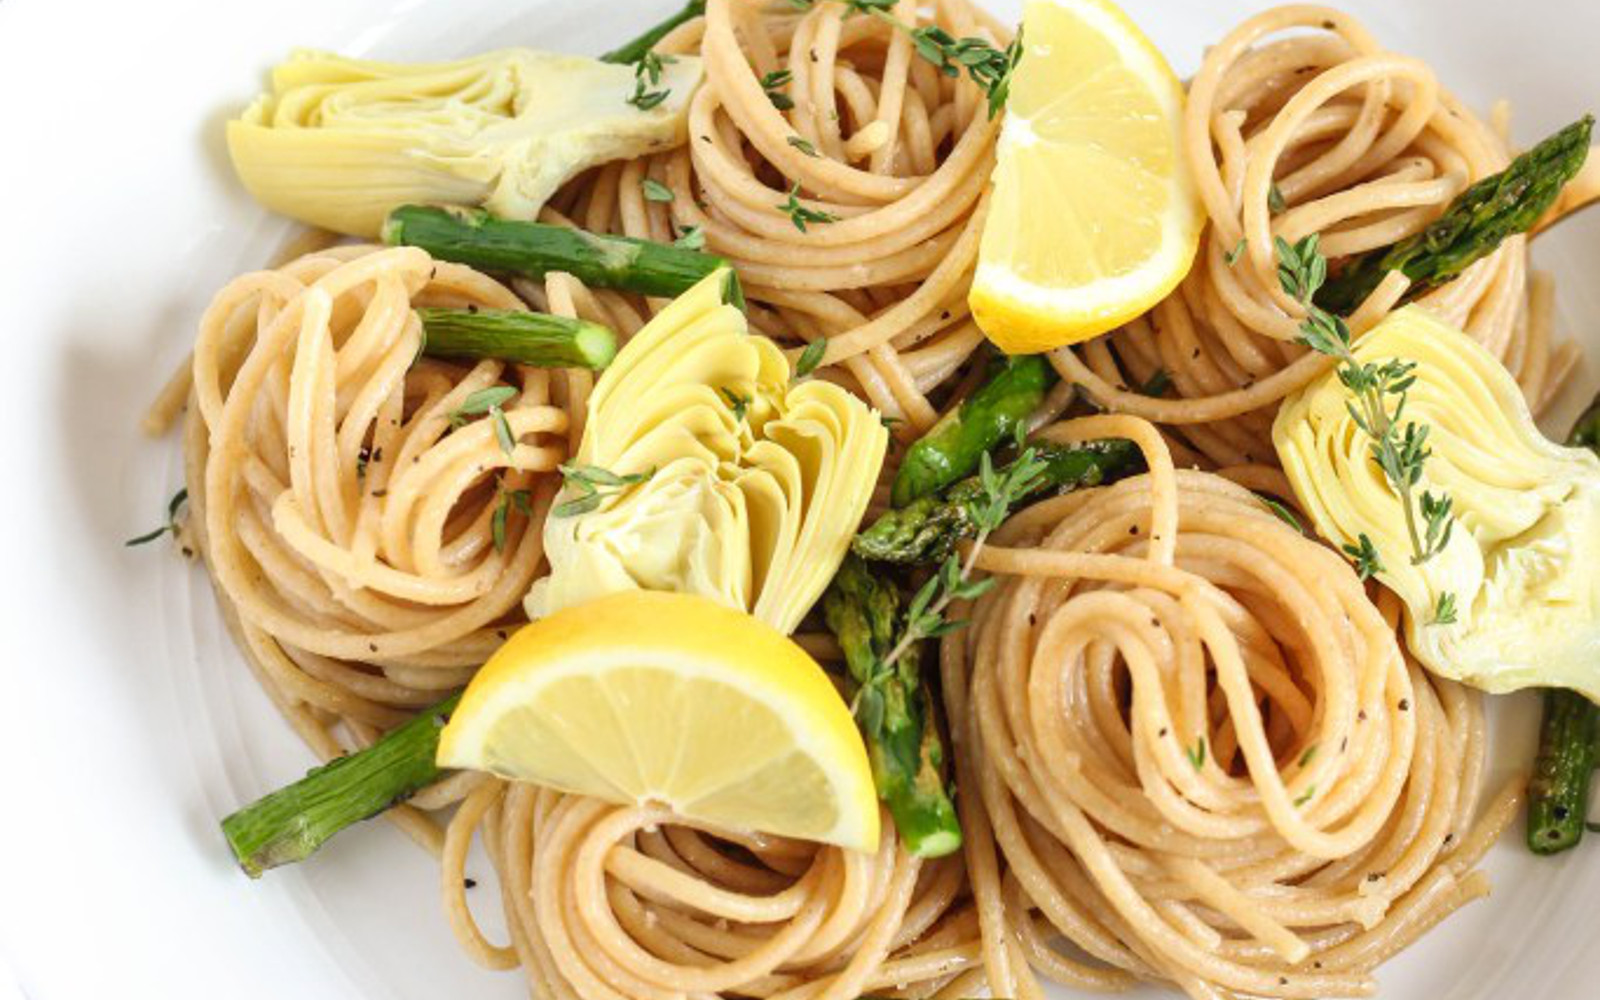 Vegan Gluten-free Garlic Asparagus Artichoke Pasta with fresh lemon